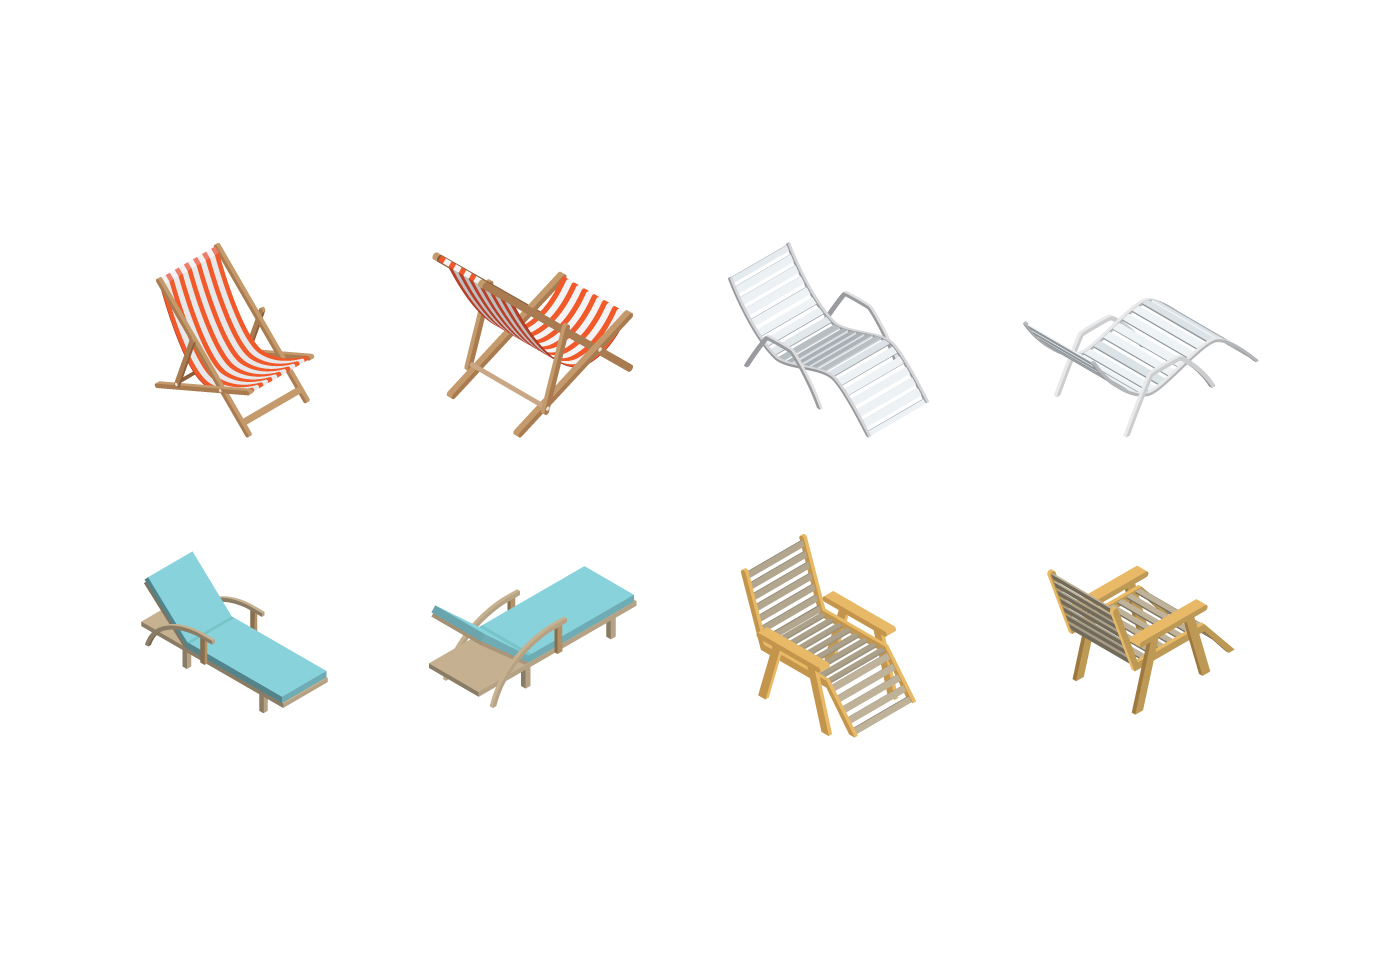 adirondack chair wood orange living room chairs free isometric deck vector - download art, stock graphics & images